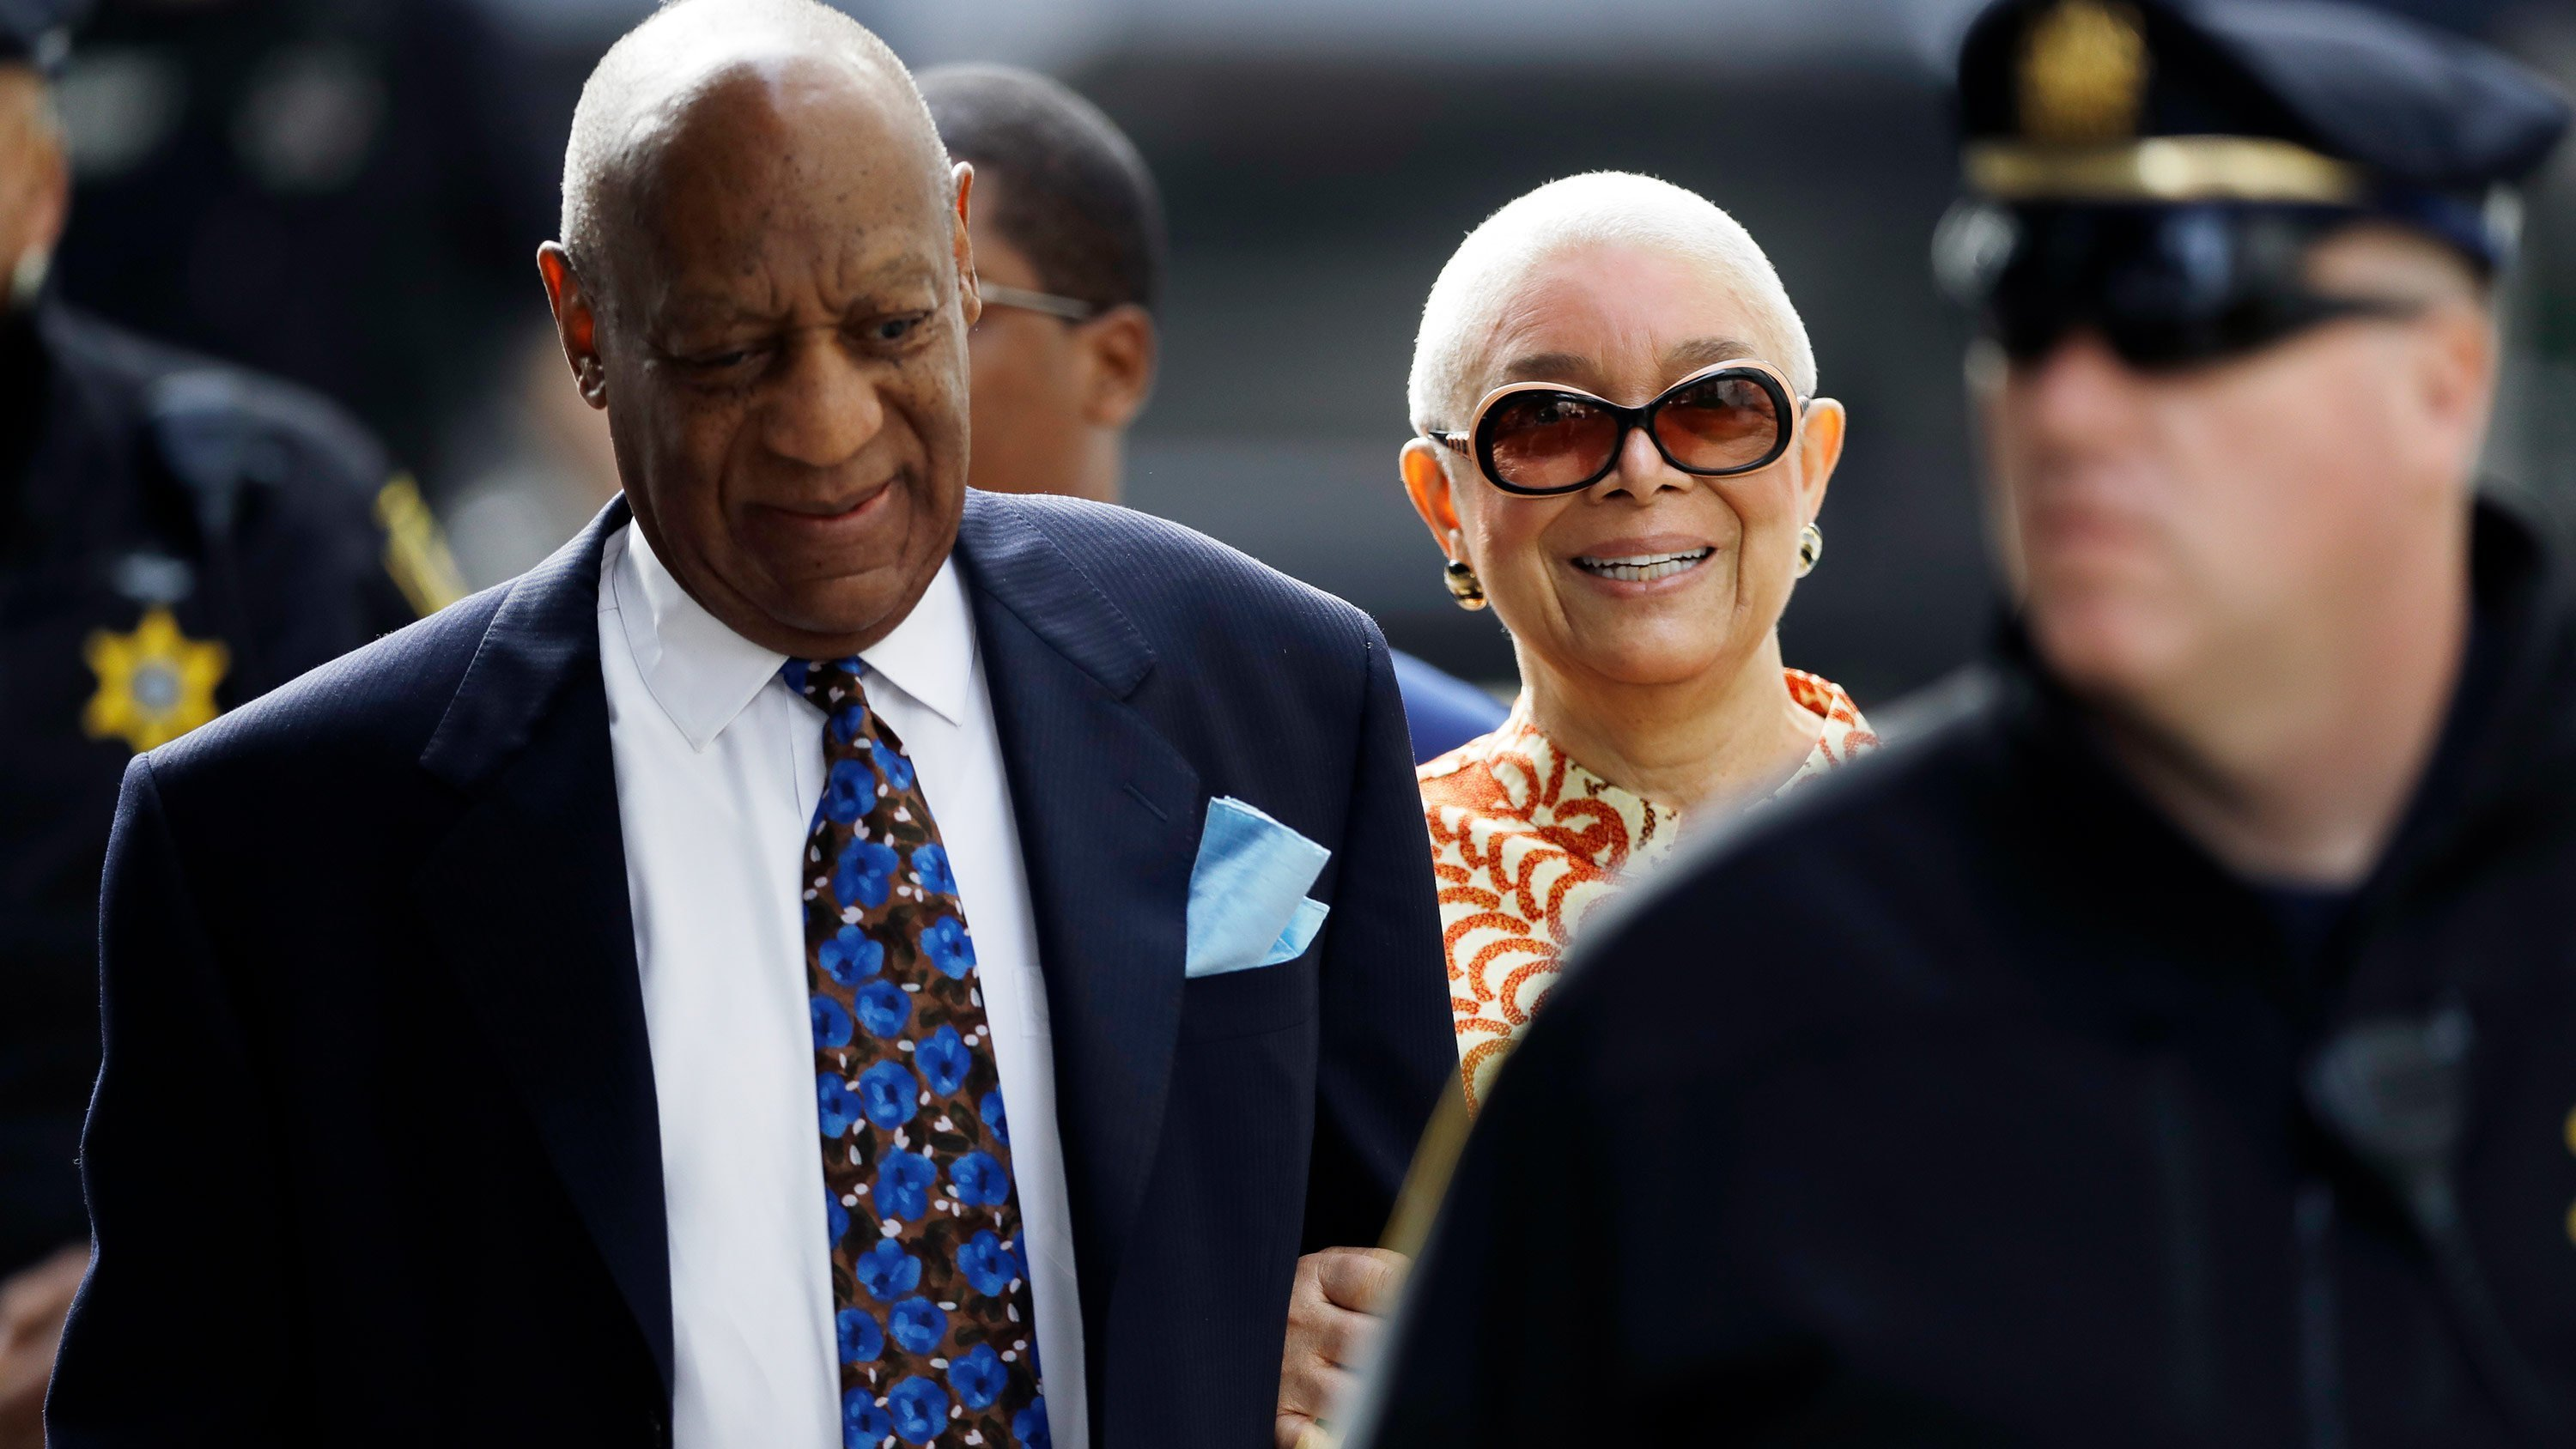 Bill Cosby's trial on three counts of aggravated indecent assault is now in the hands of the 12-person jury. Jurors received the case Wednesday shortly after 11 a.m